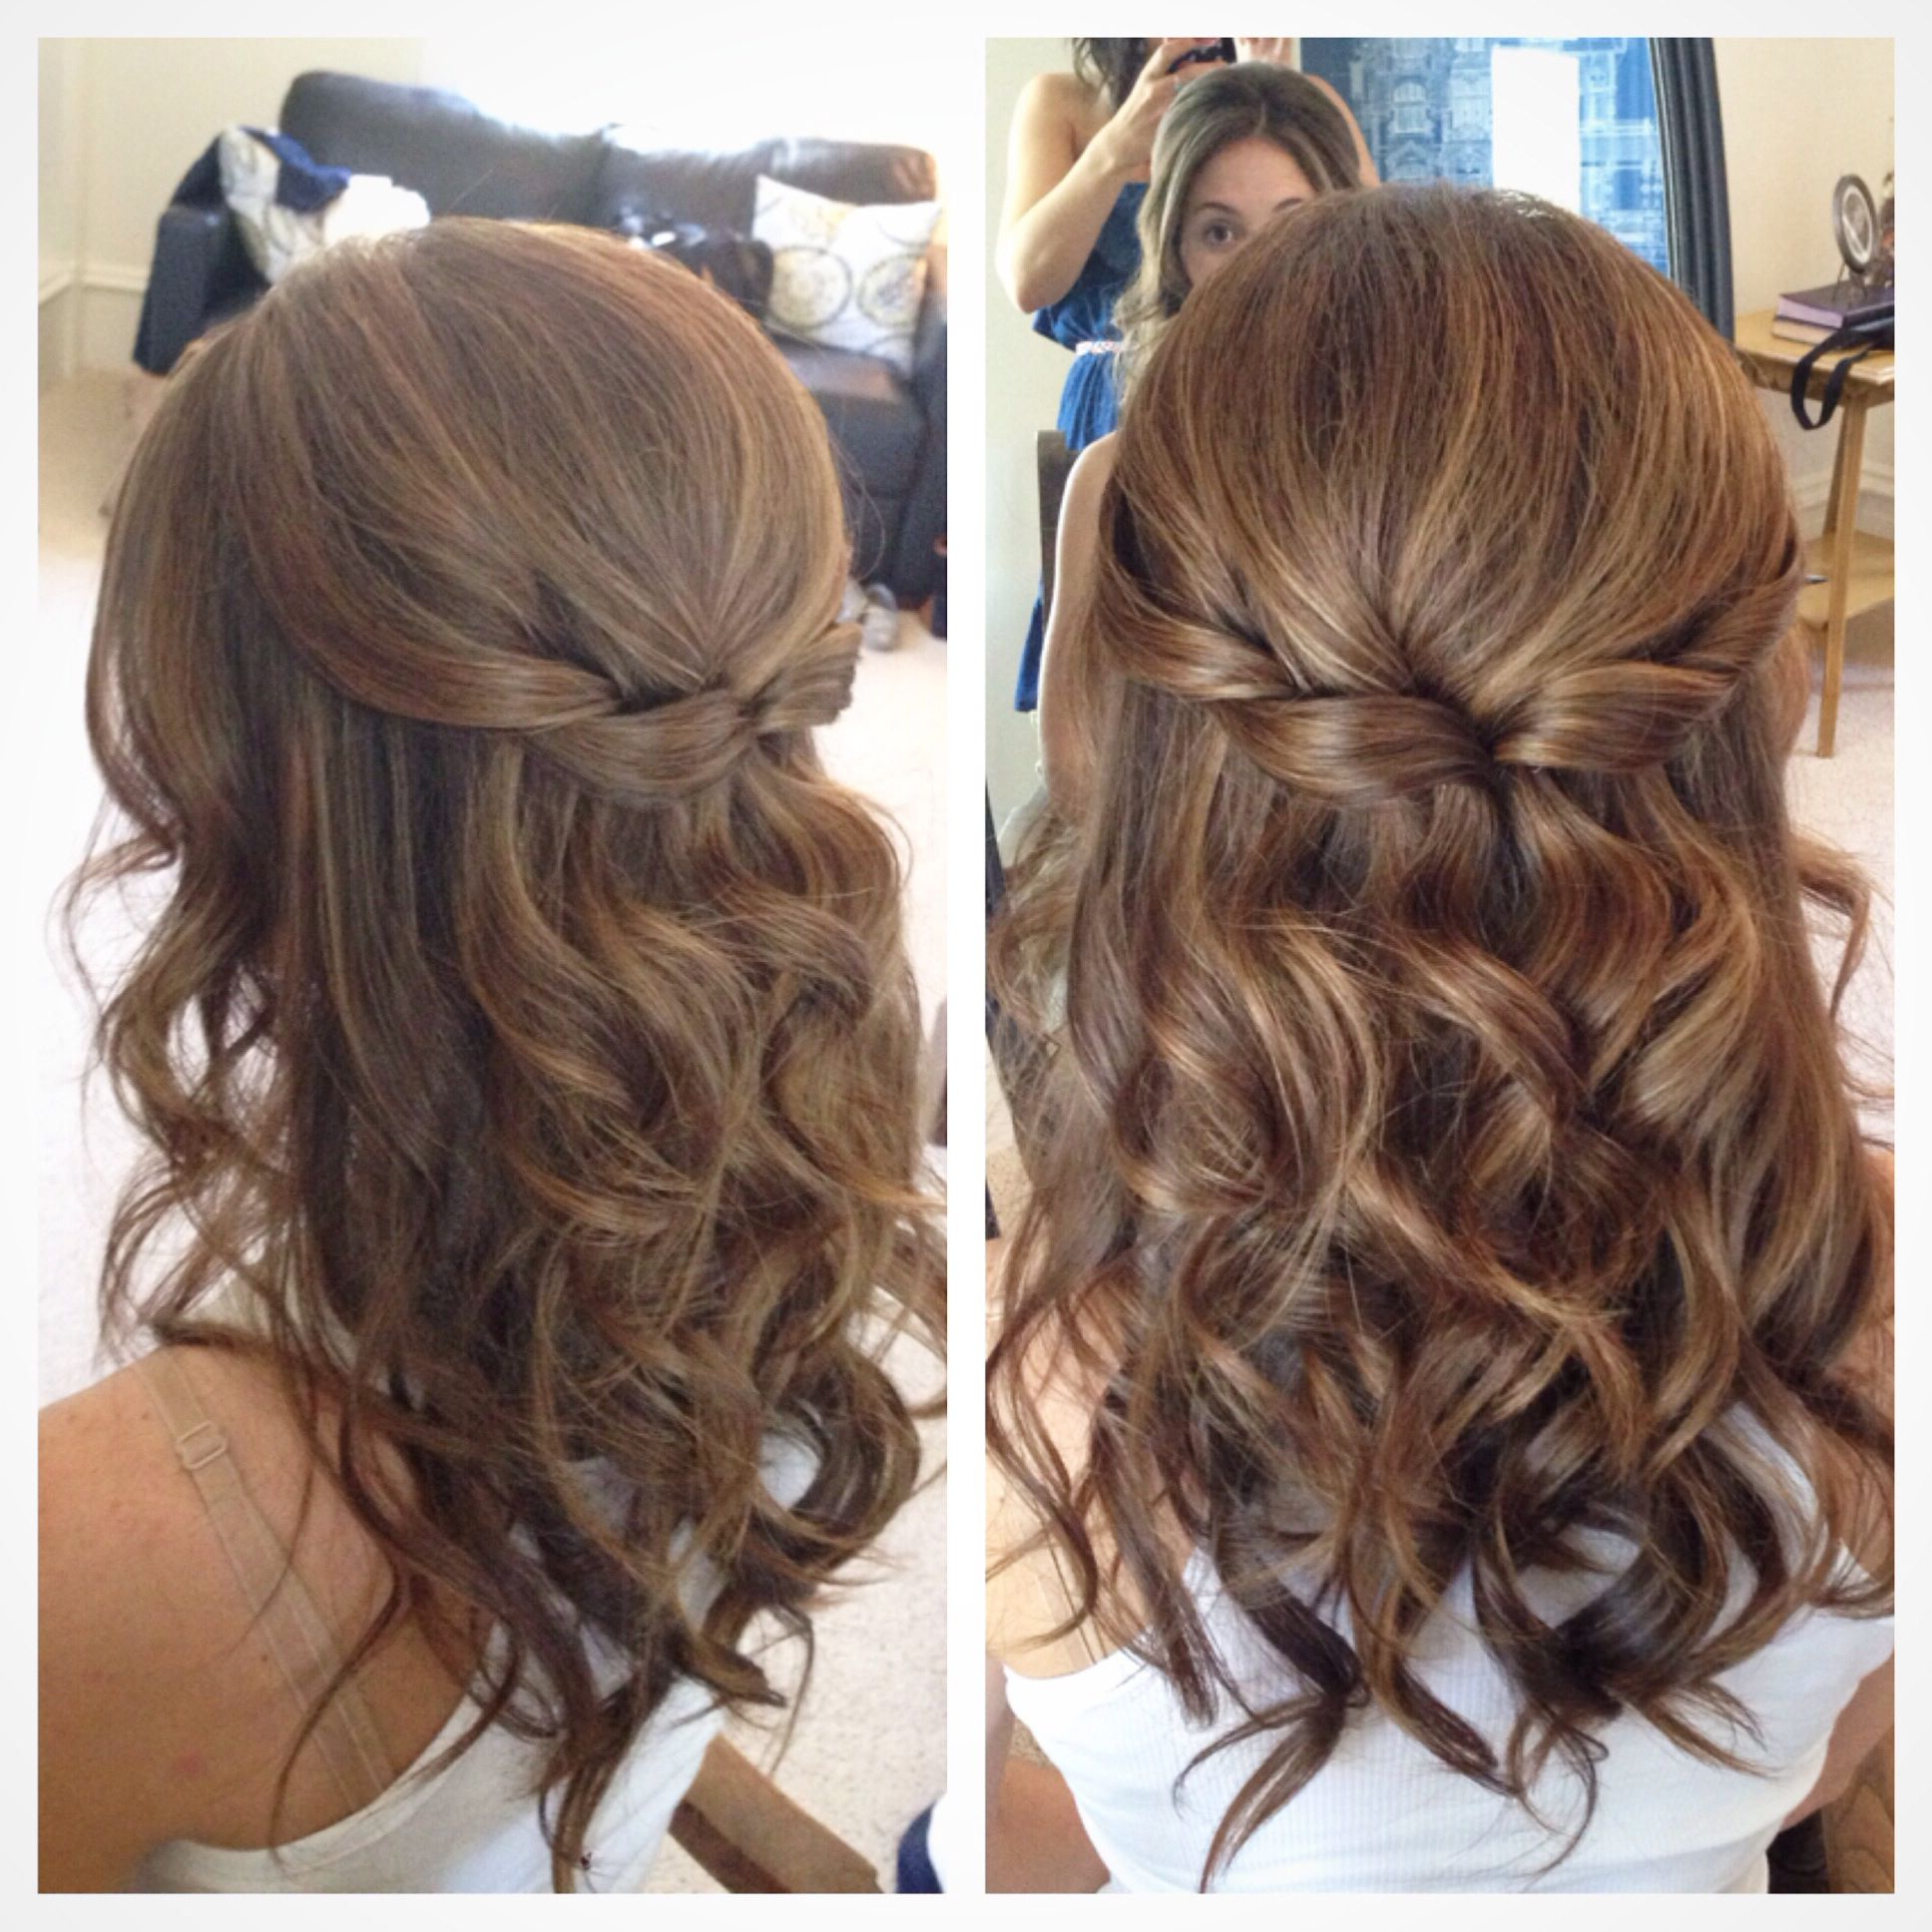 Latest Professionally Curled Short Bridal Hairstyles In Half Up Half Down Hair, Wedding Hair, Pretty Hair But With Softer (Gallery 6 of 20)